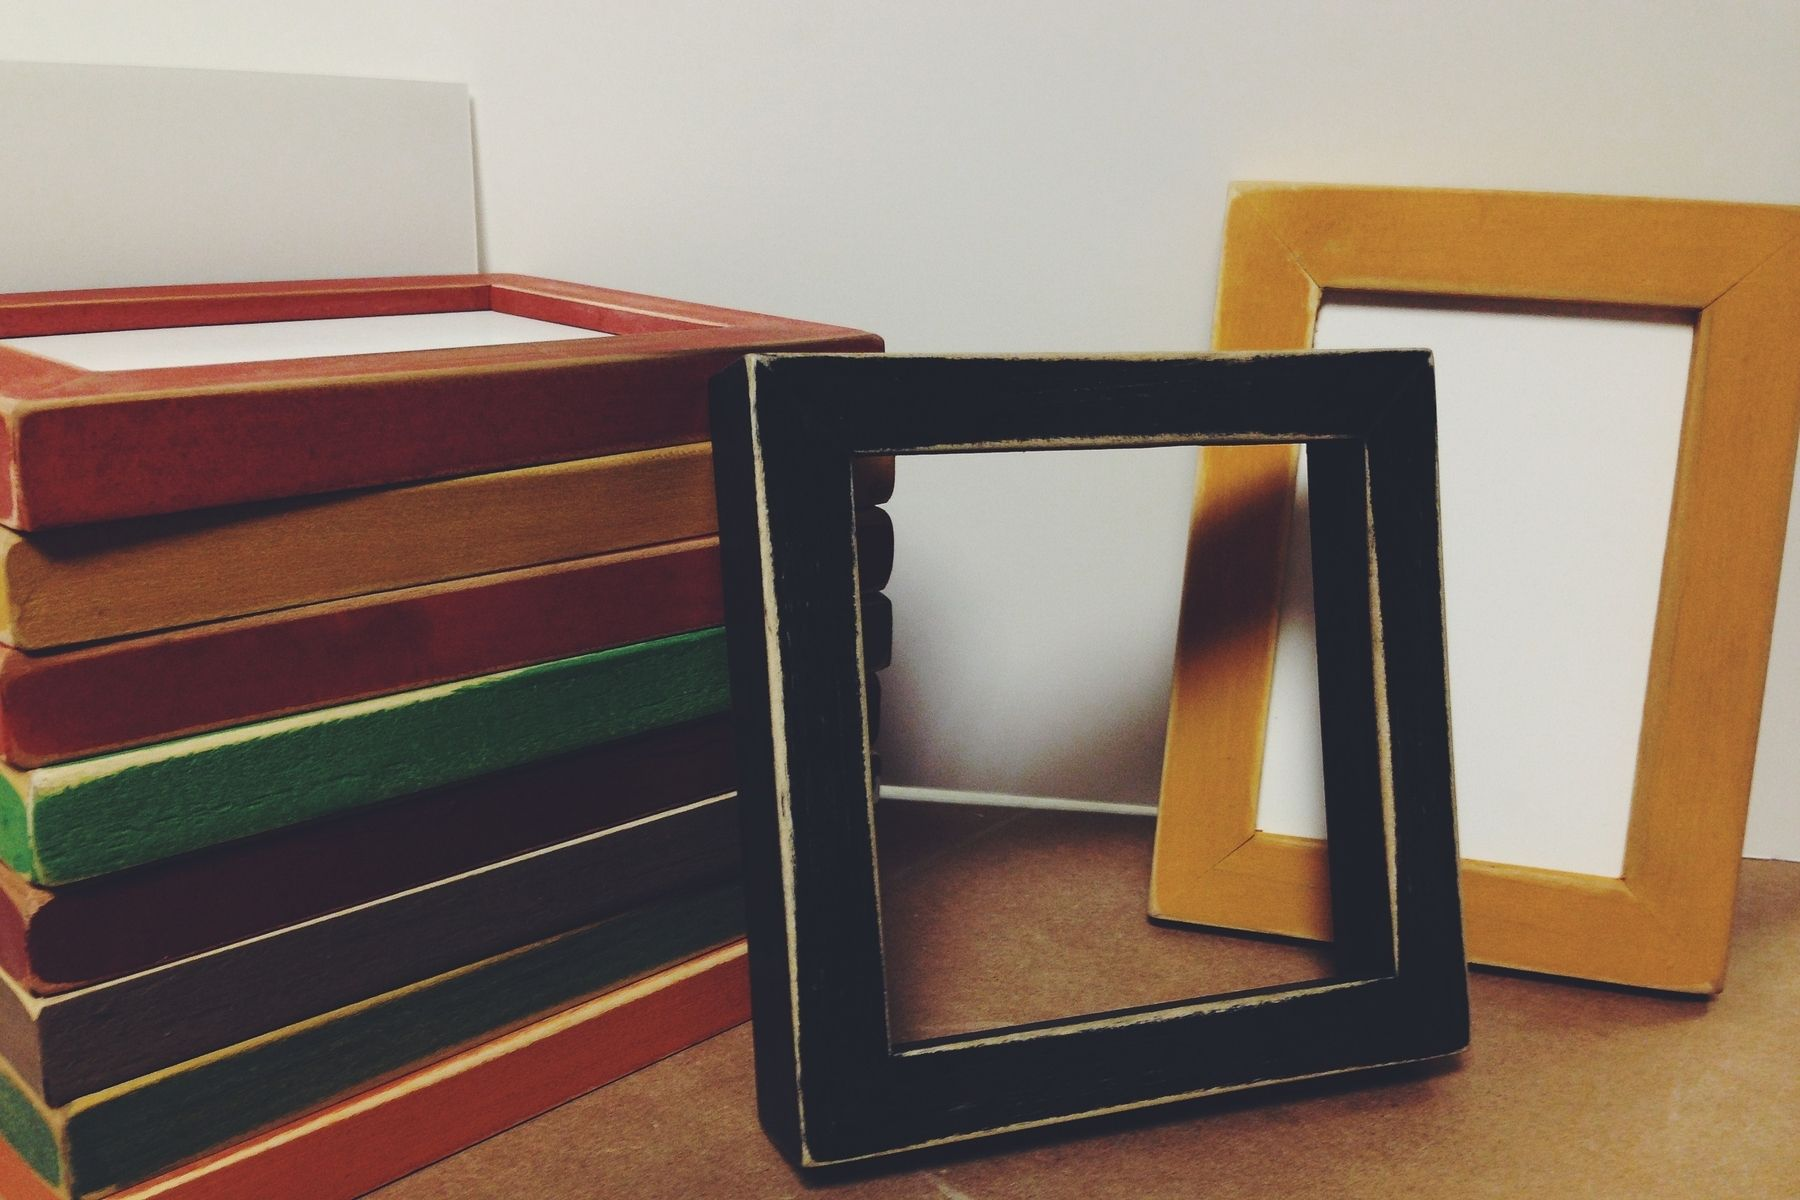 Custom Made Instagram Photo Picture Frames - 4x4 5x5 6x6 8x8 10x10 ...